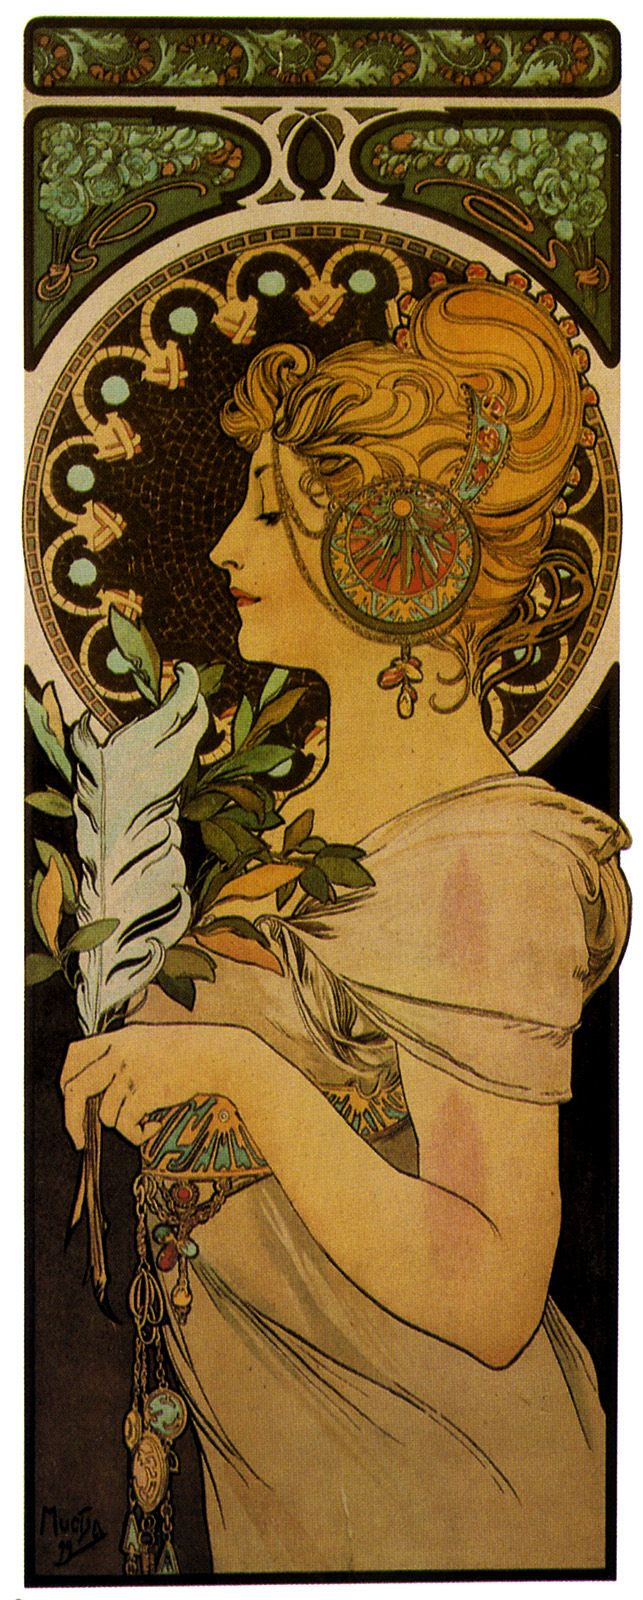 17 Best images about Alfons Mucha Posters, Pins on ...